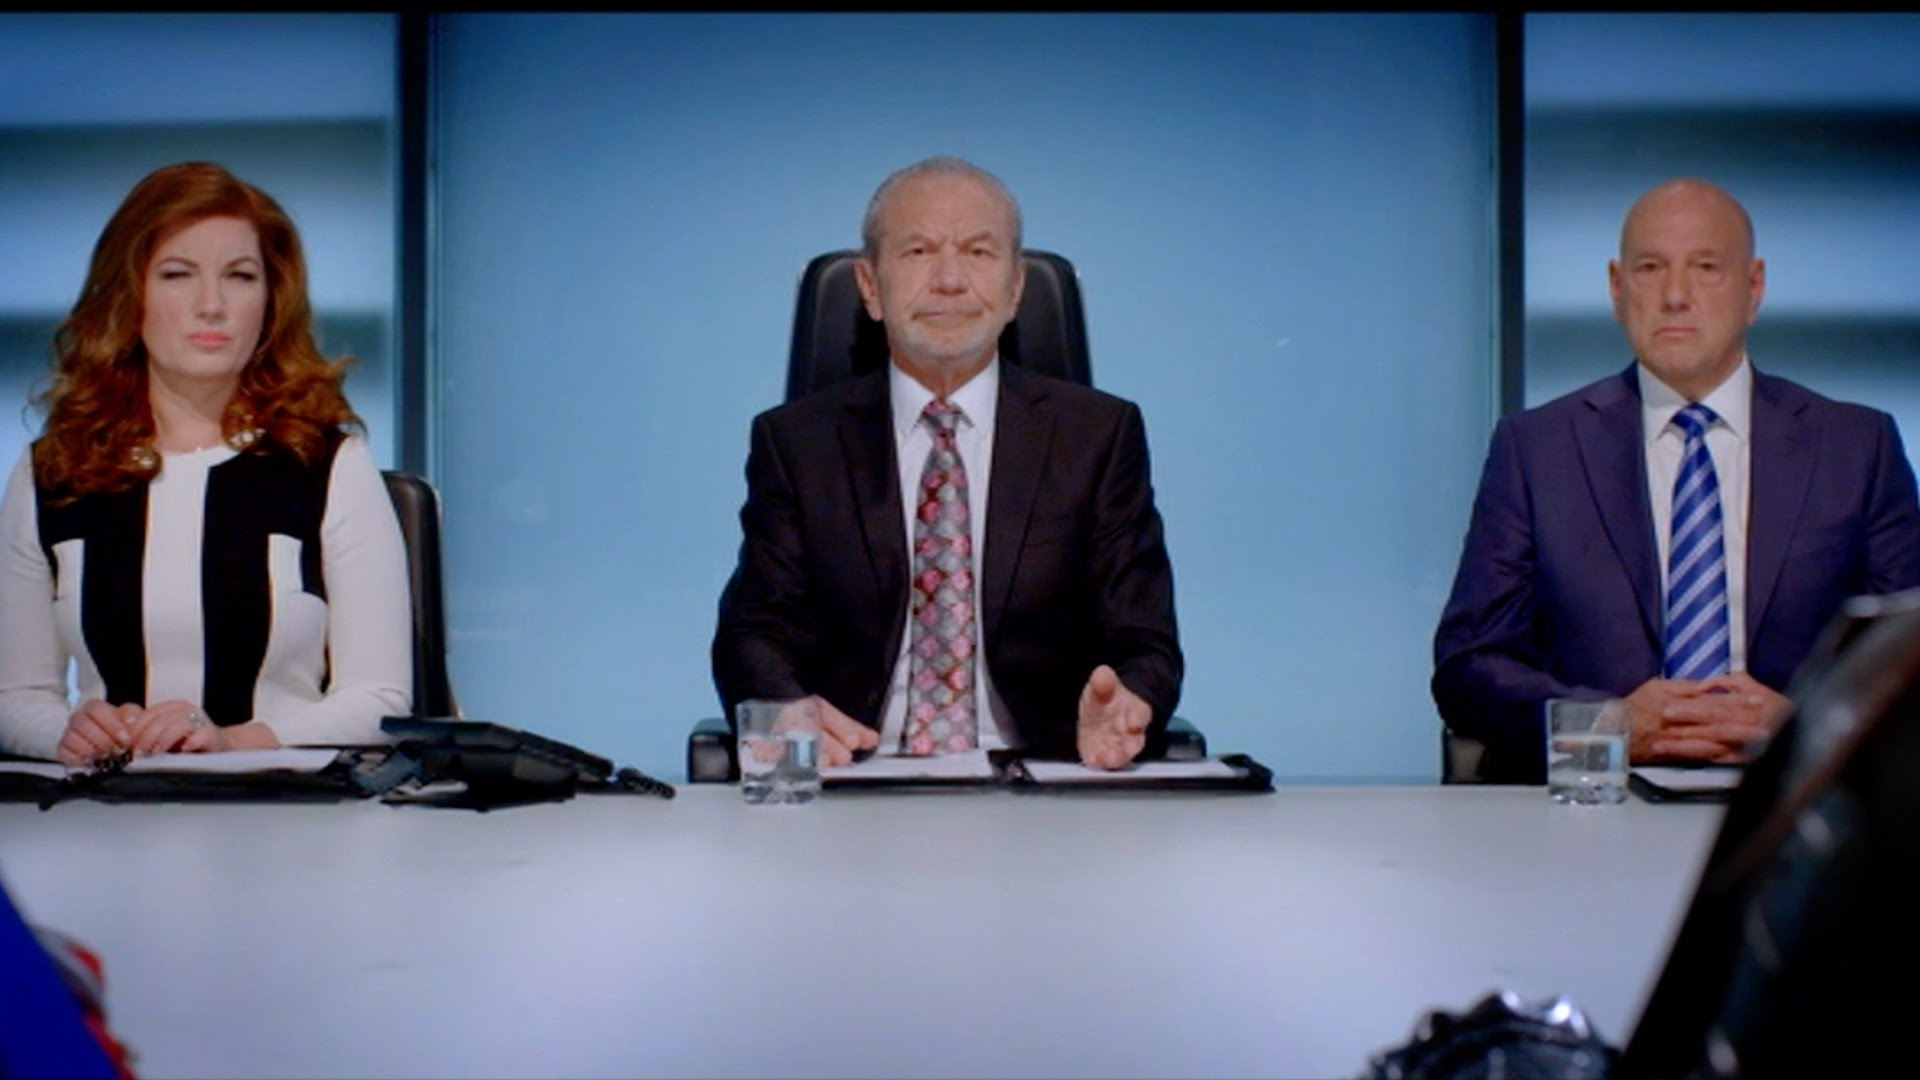 Lord Alan Sugar on The Apprentice.